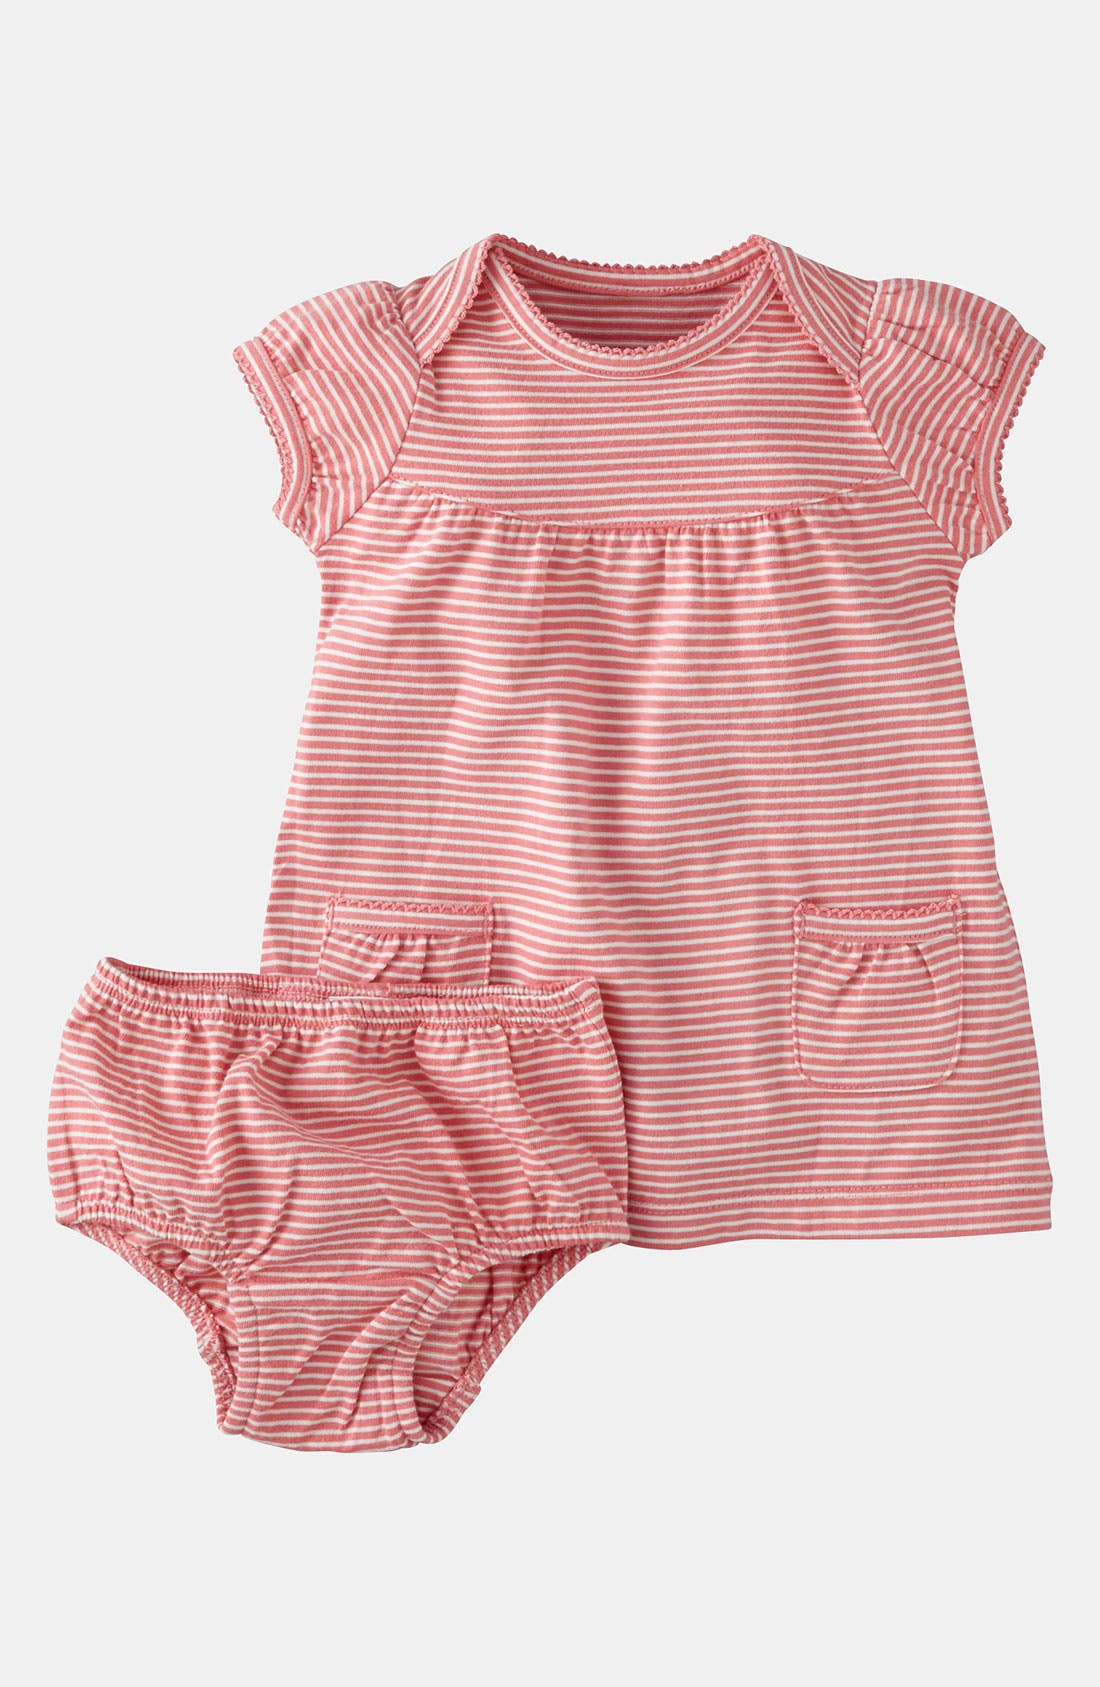 Alternate Image 1 Selected - Mini Boden 'Simple' Jersey Dress & Bloomers (Infant)